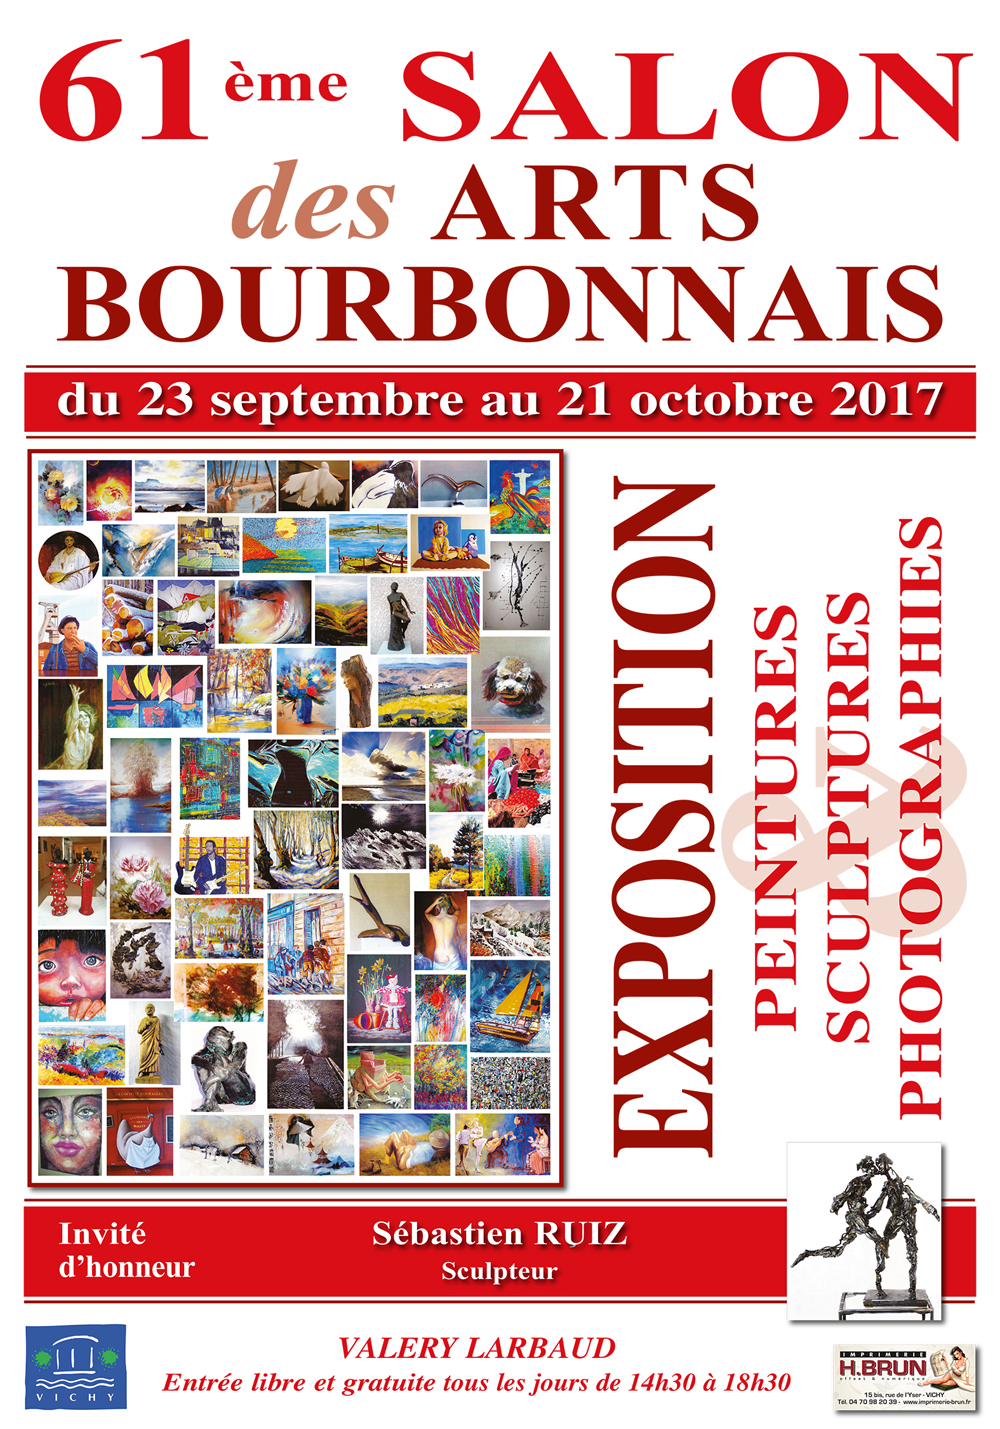 Salon des arts Bourbonnais